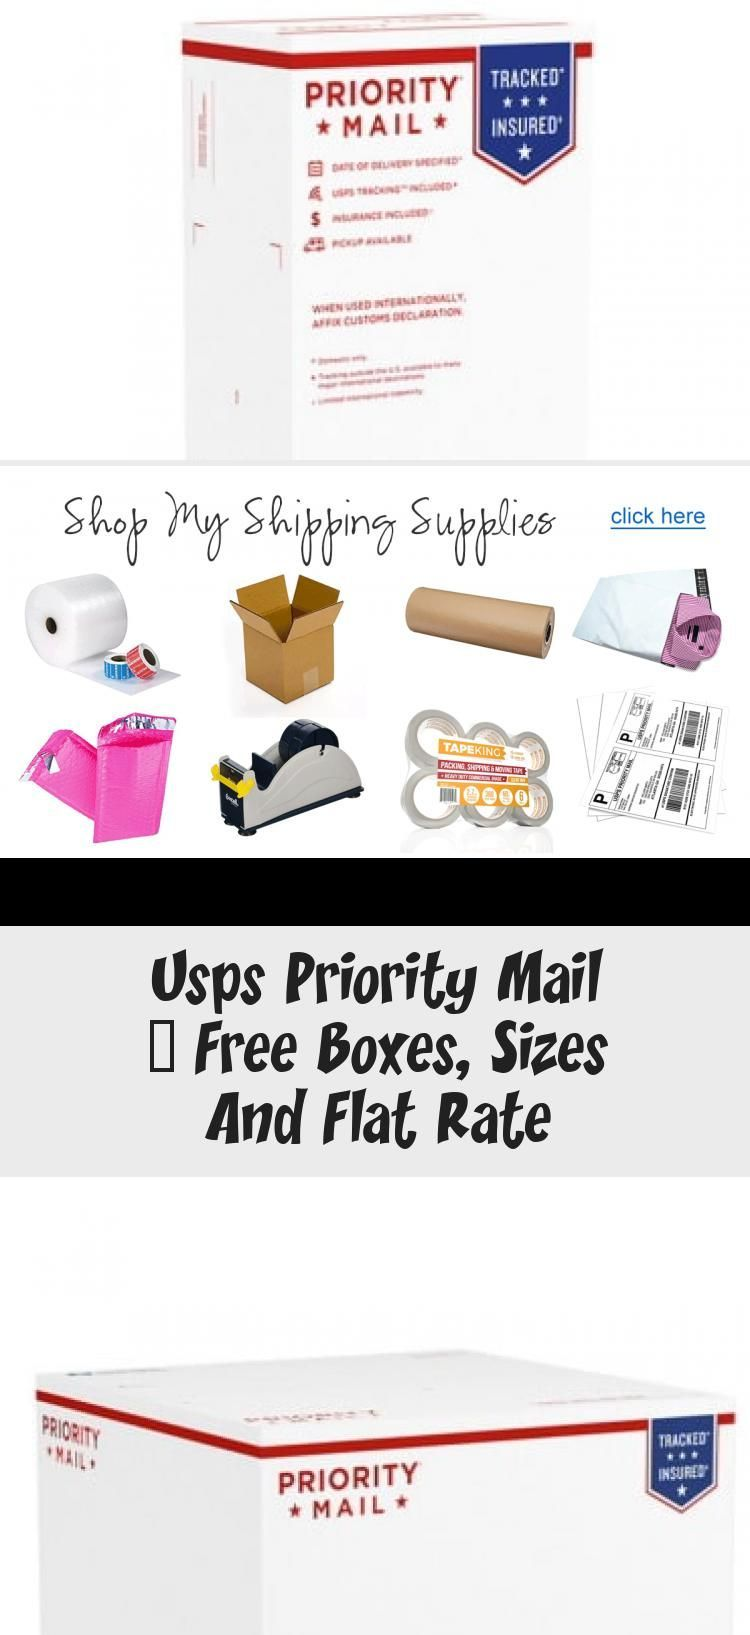 Usps Priority Mail Free Boxes Sizes And Flat Rate As An Ebay